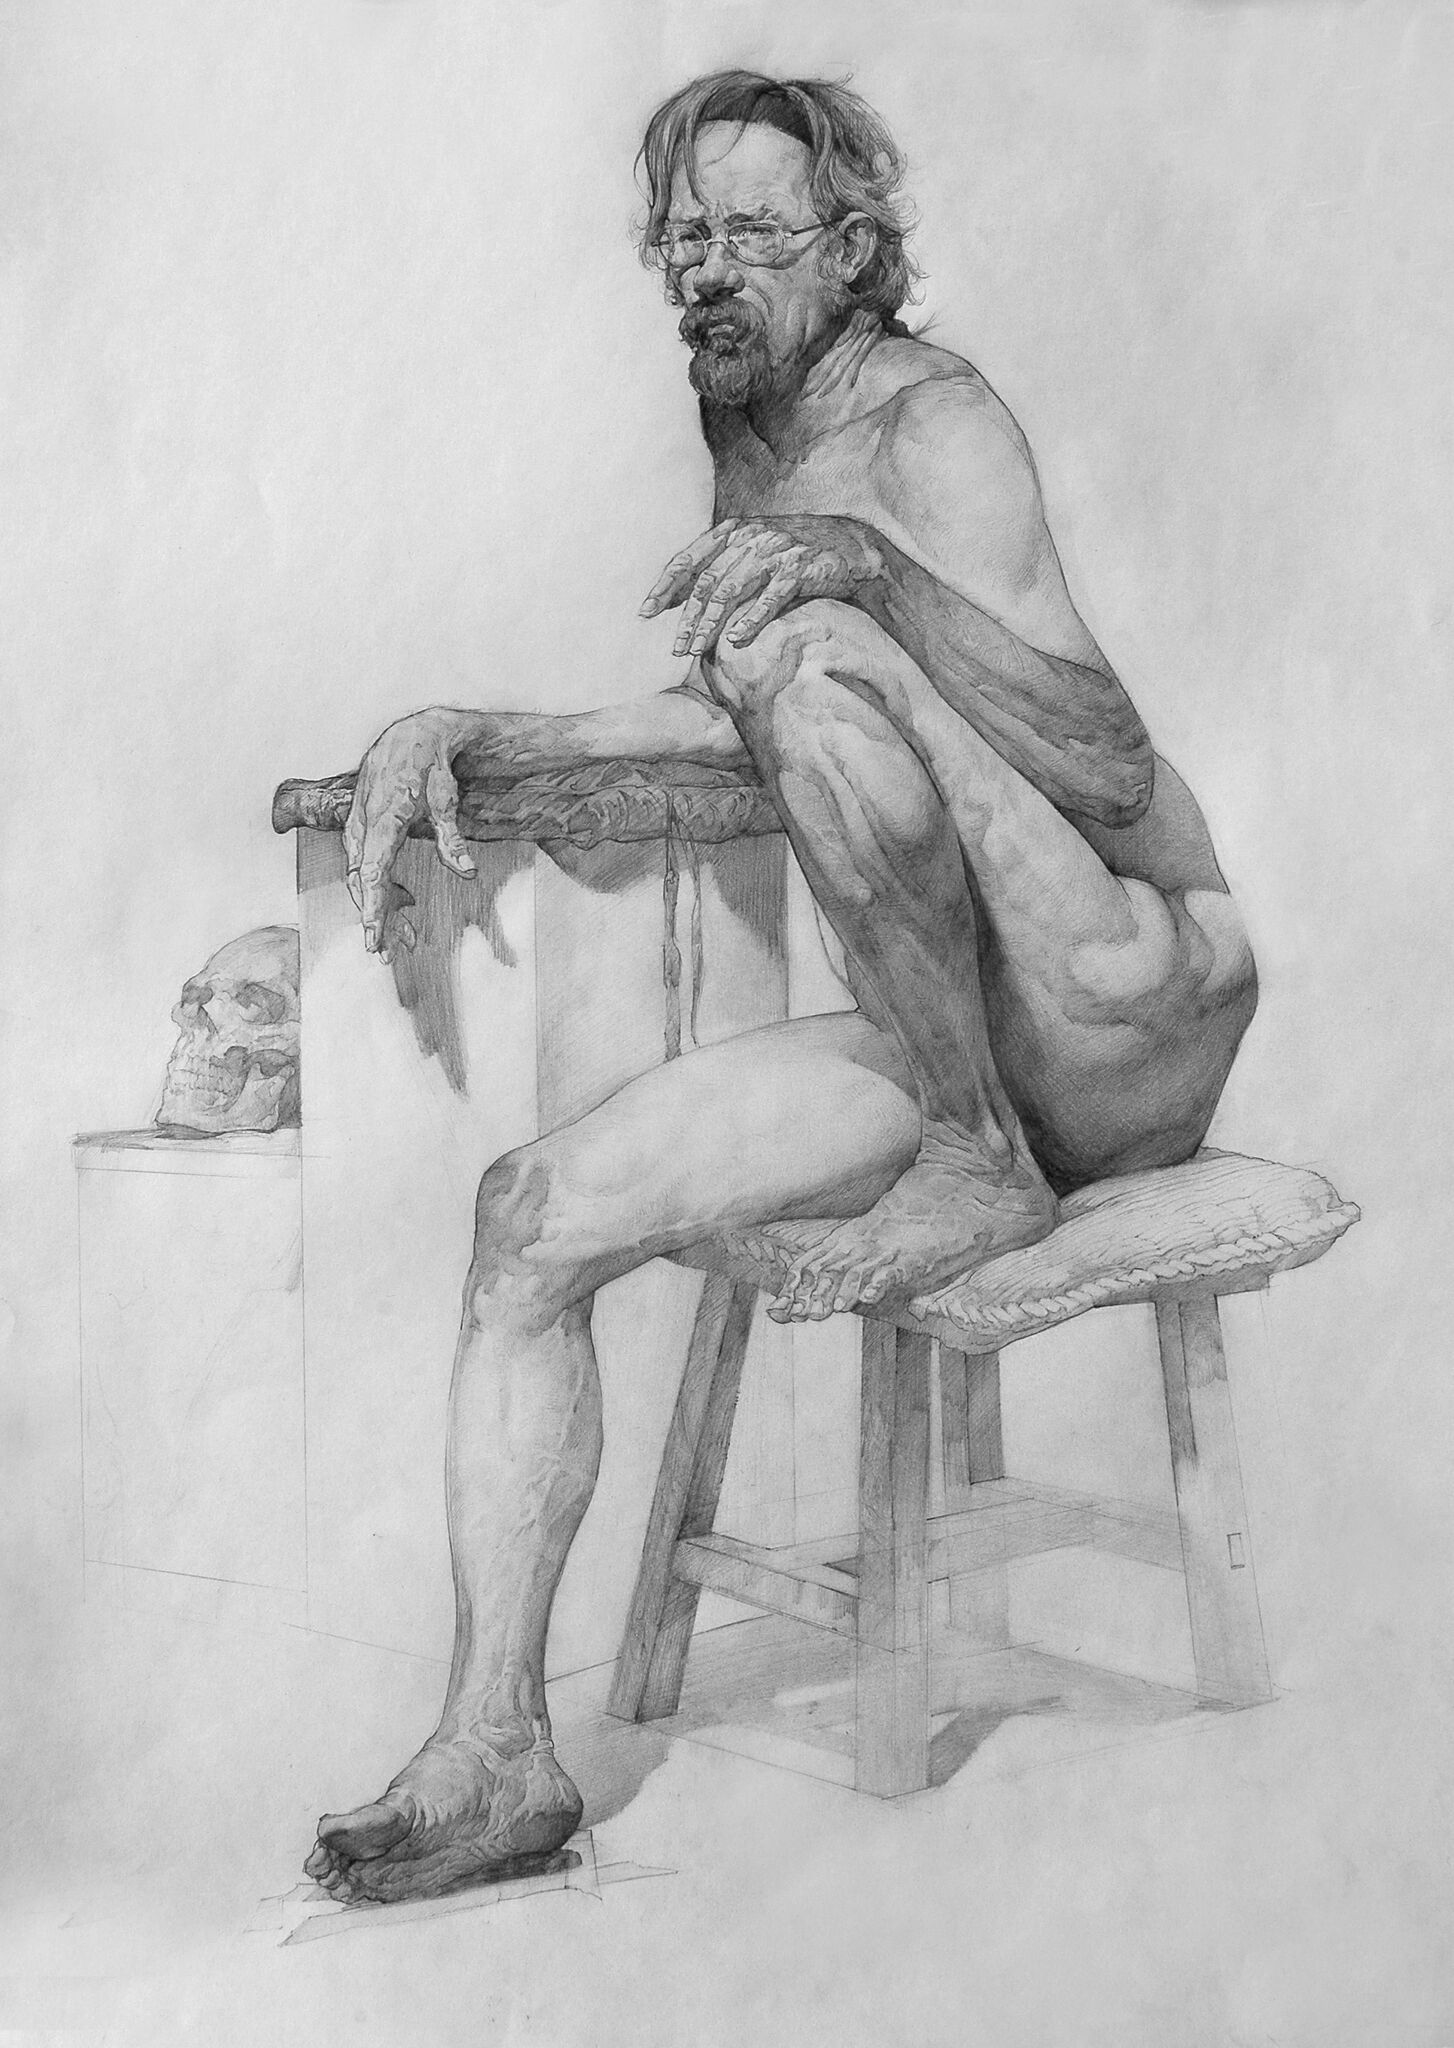 Jeffrey_Watts_15 hour life drawing24x18_preview